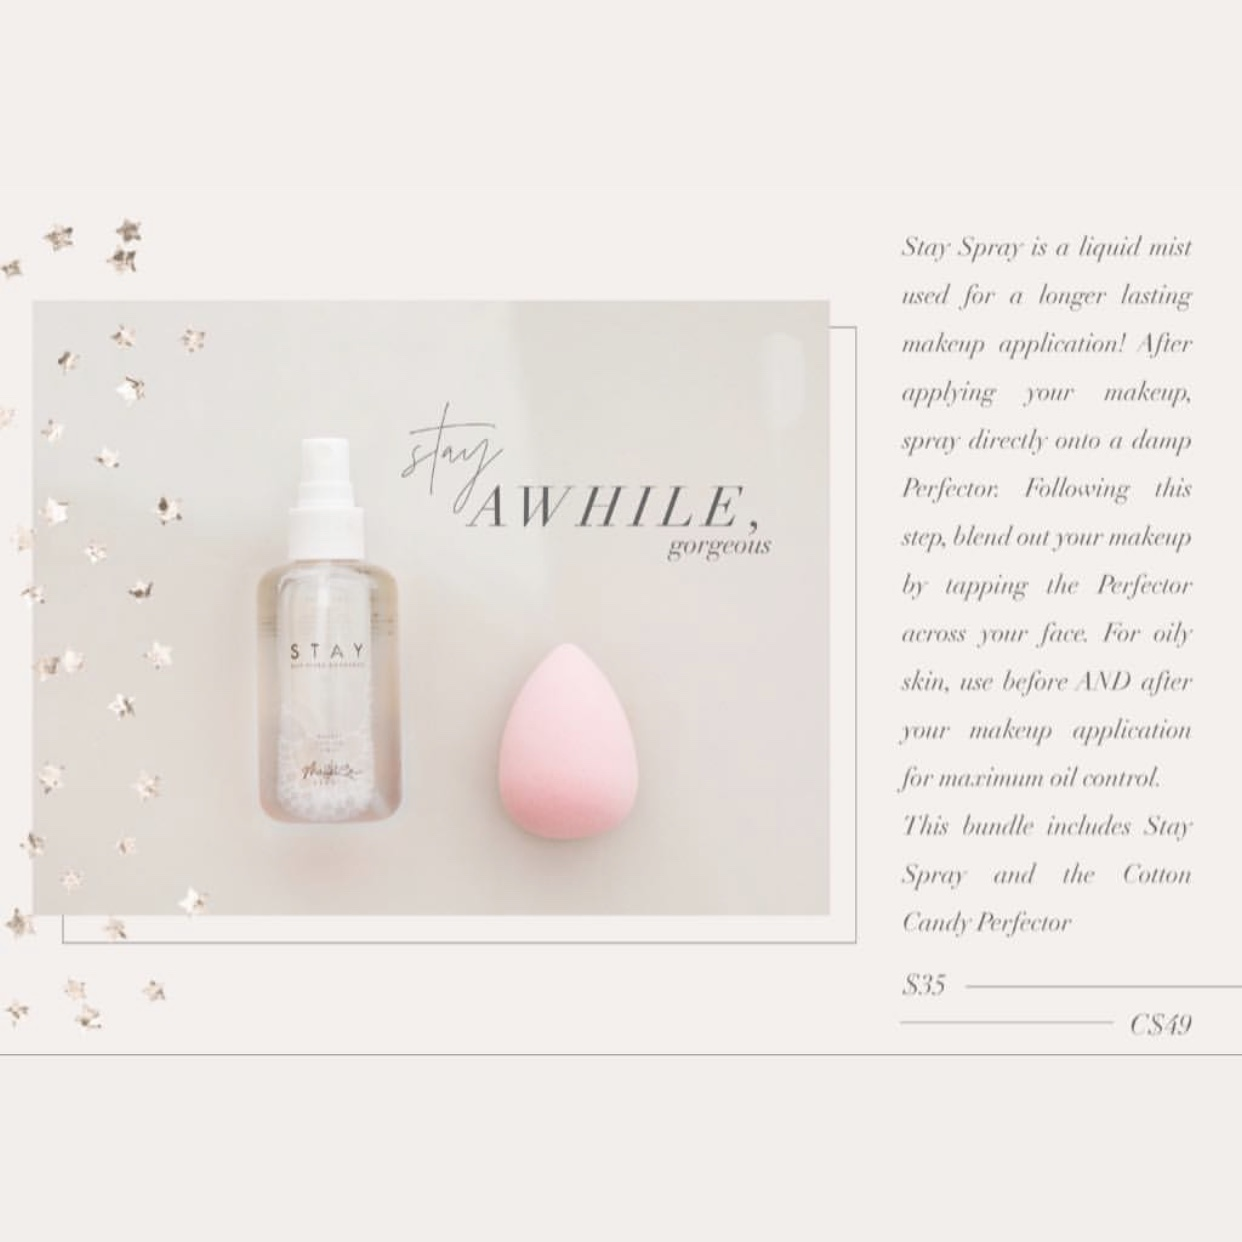 stay spray perfector sponge maskcara beauty mothers day bundle 2019 tauritucker.com